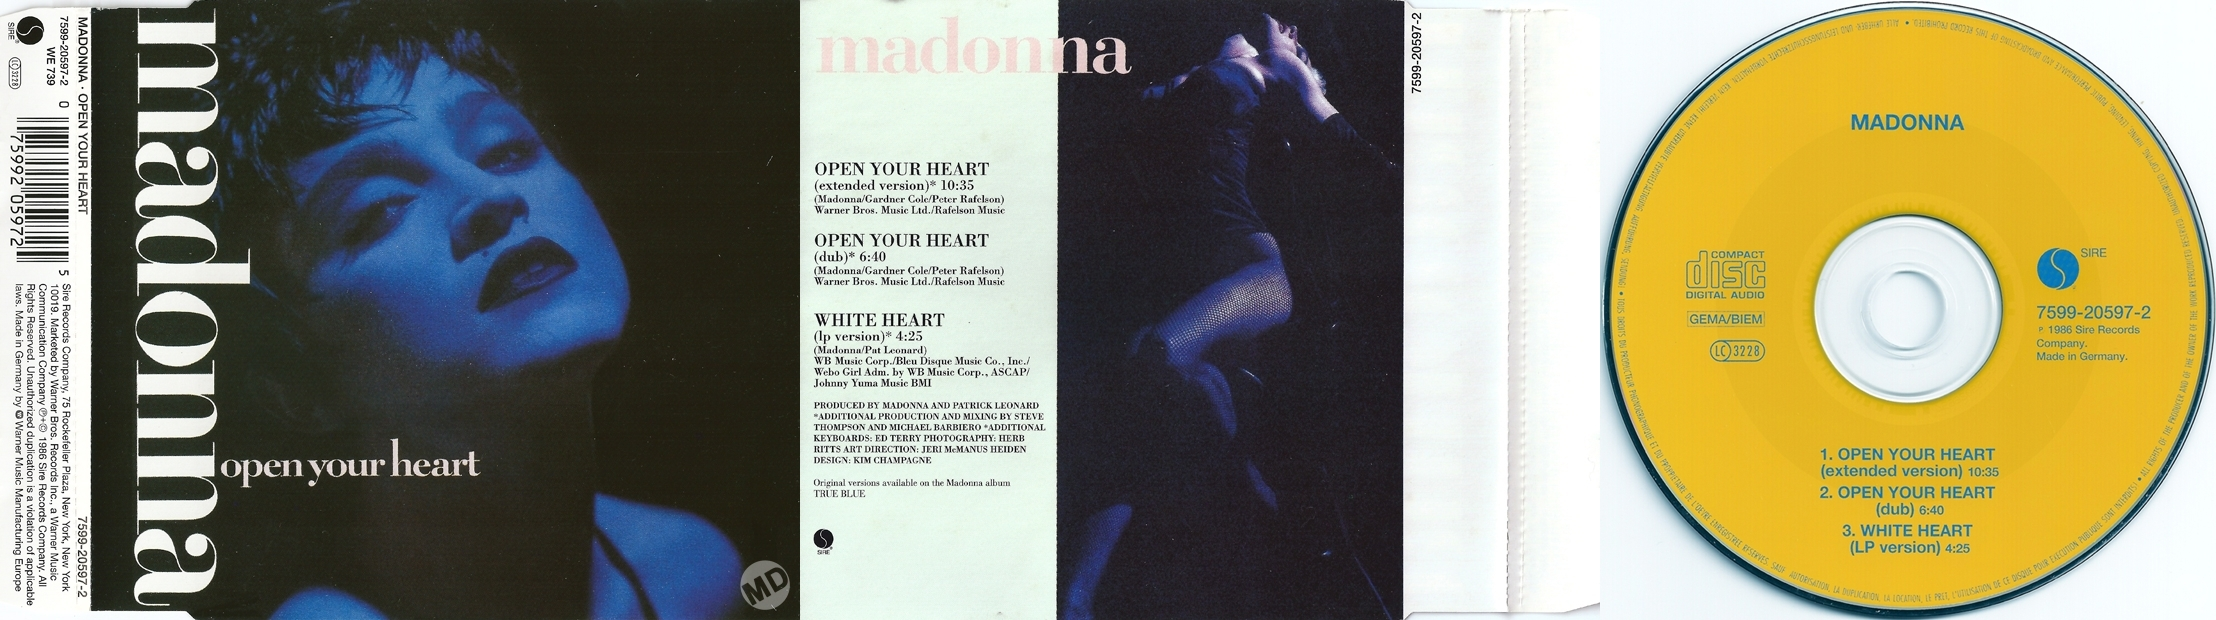 madonna-open-your-heart-cd-single-aleman